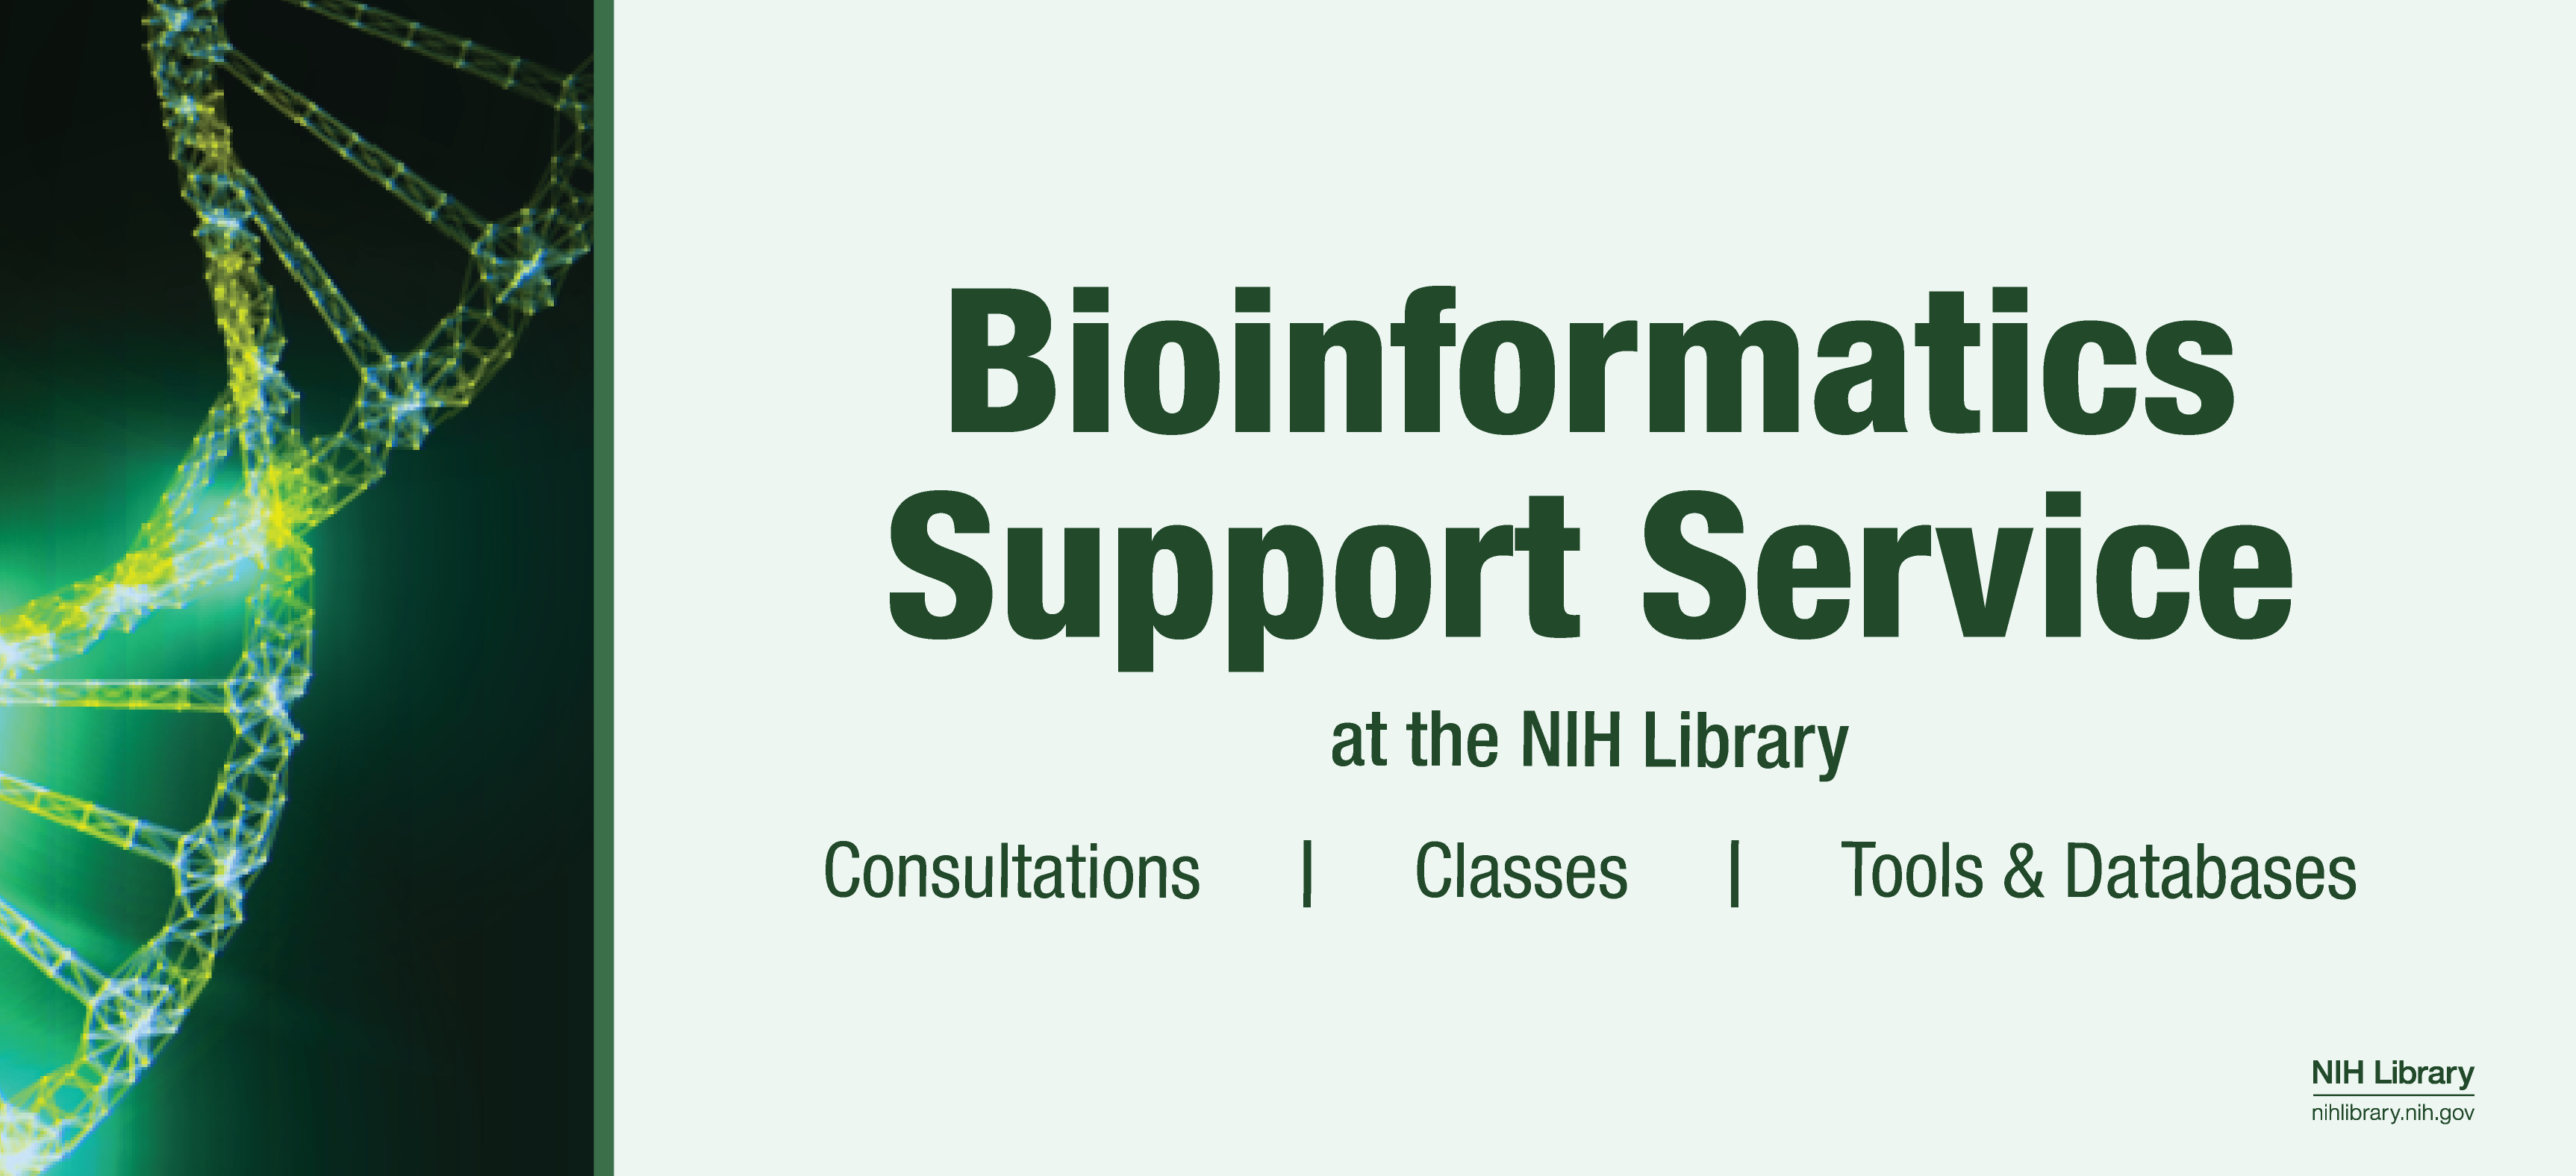 Bioinformatics Support Service at the NIH Library